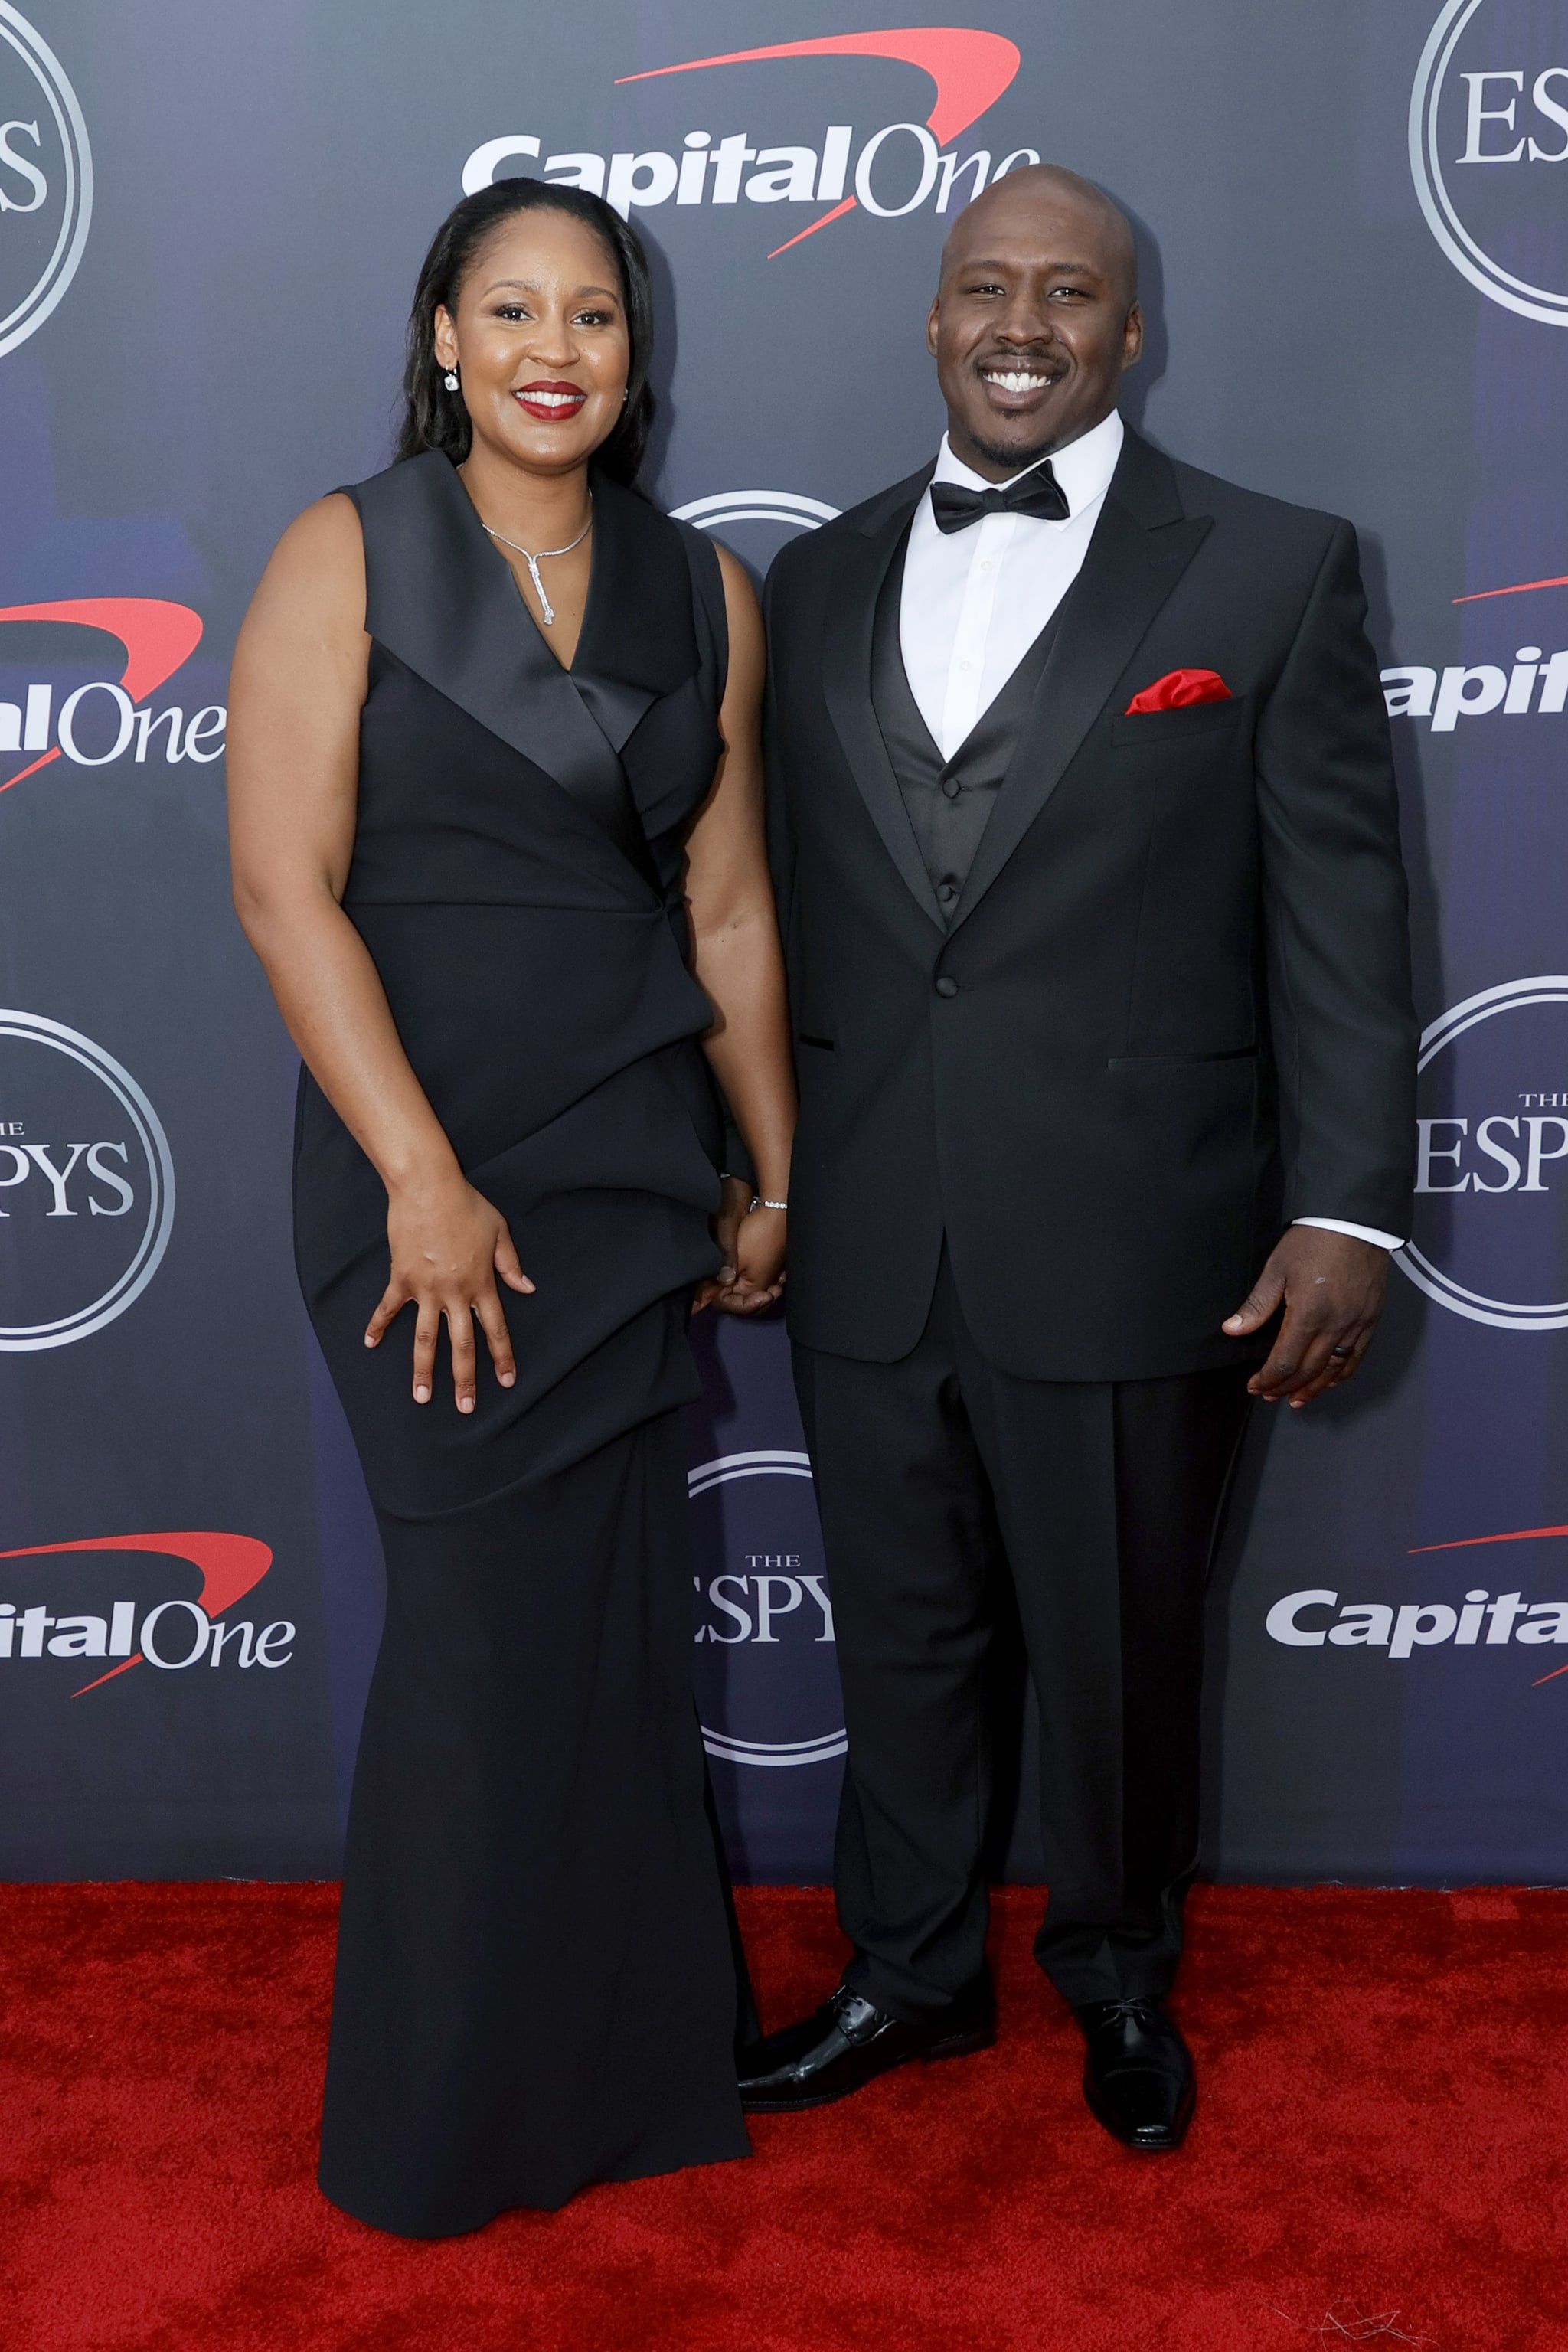 NEW YORK, NEW YORK - JULY 10: (L-R) Maya Moore and Jonathan Irons attend the 2021 ESPY Awards at Rooftop At Pier 17 on July 10, 2021 in New York City. (Photo by Michael Loccisano/Getty Images)